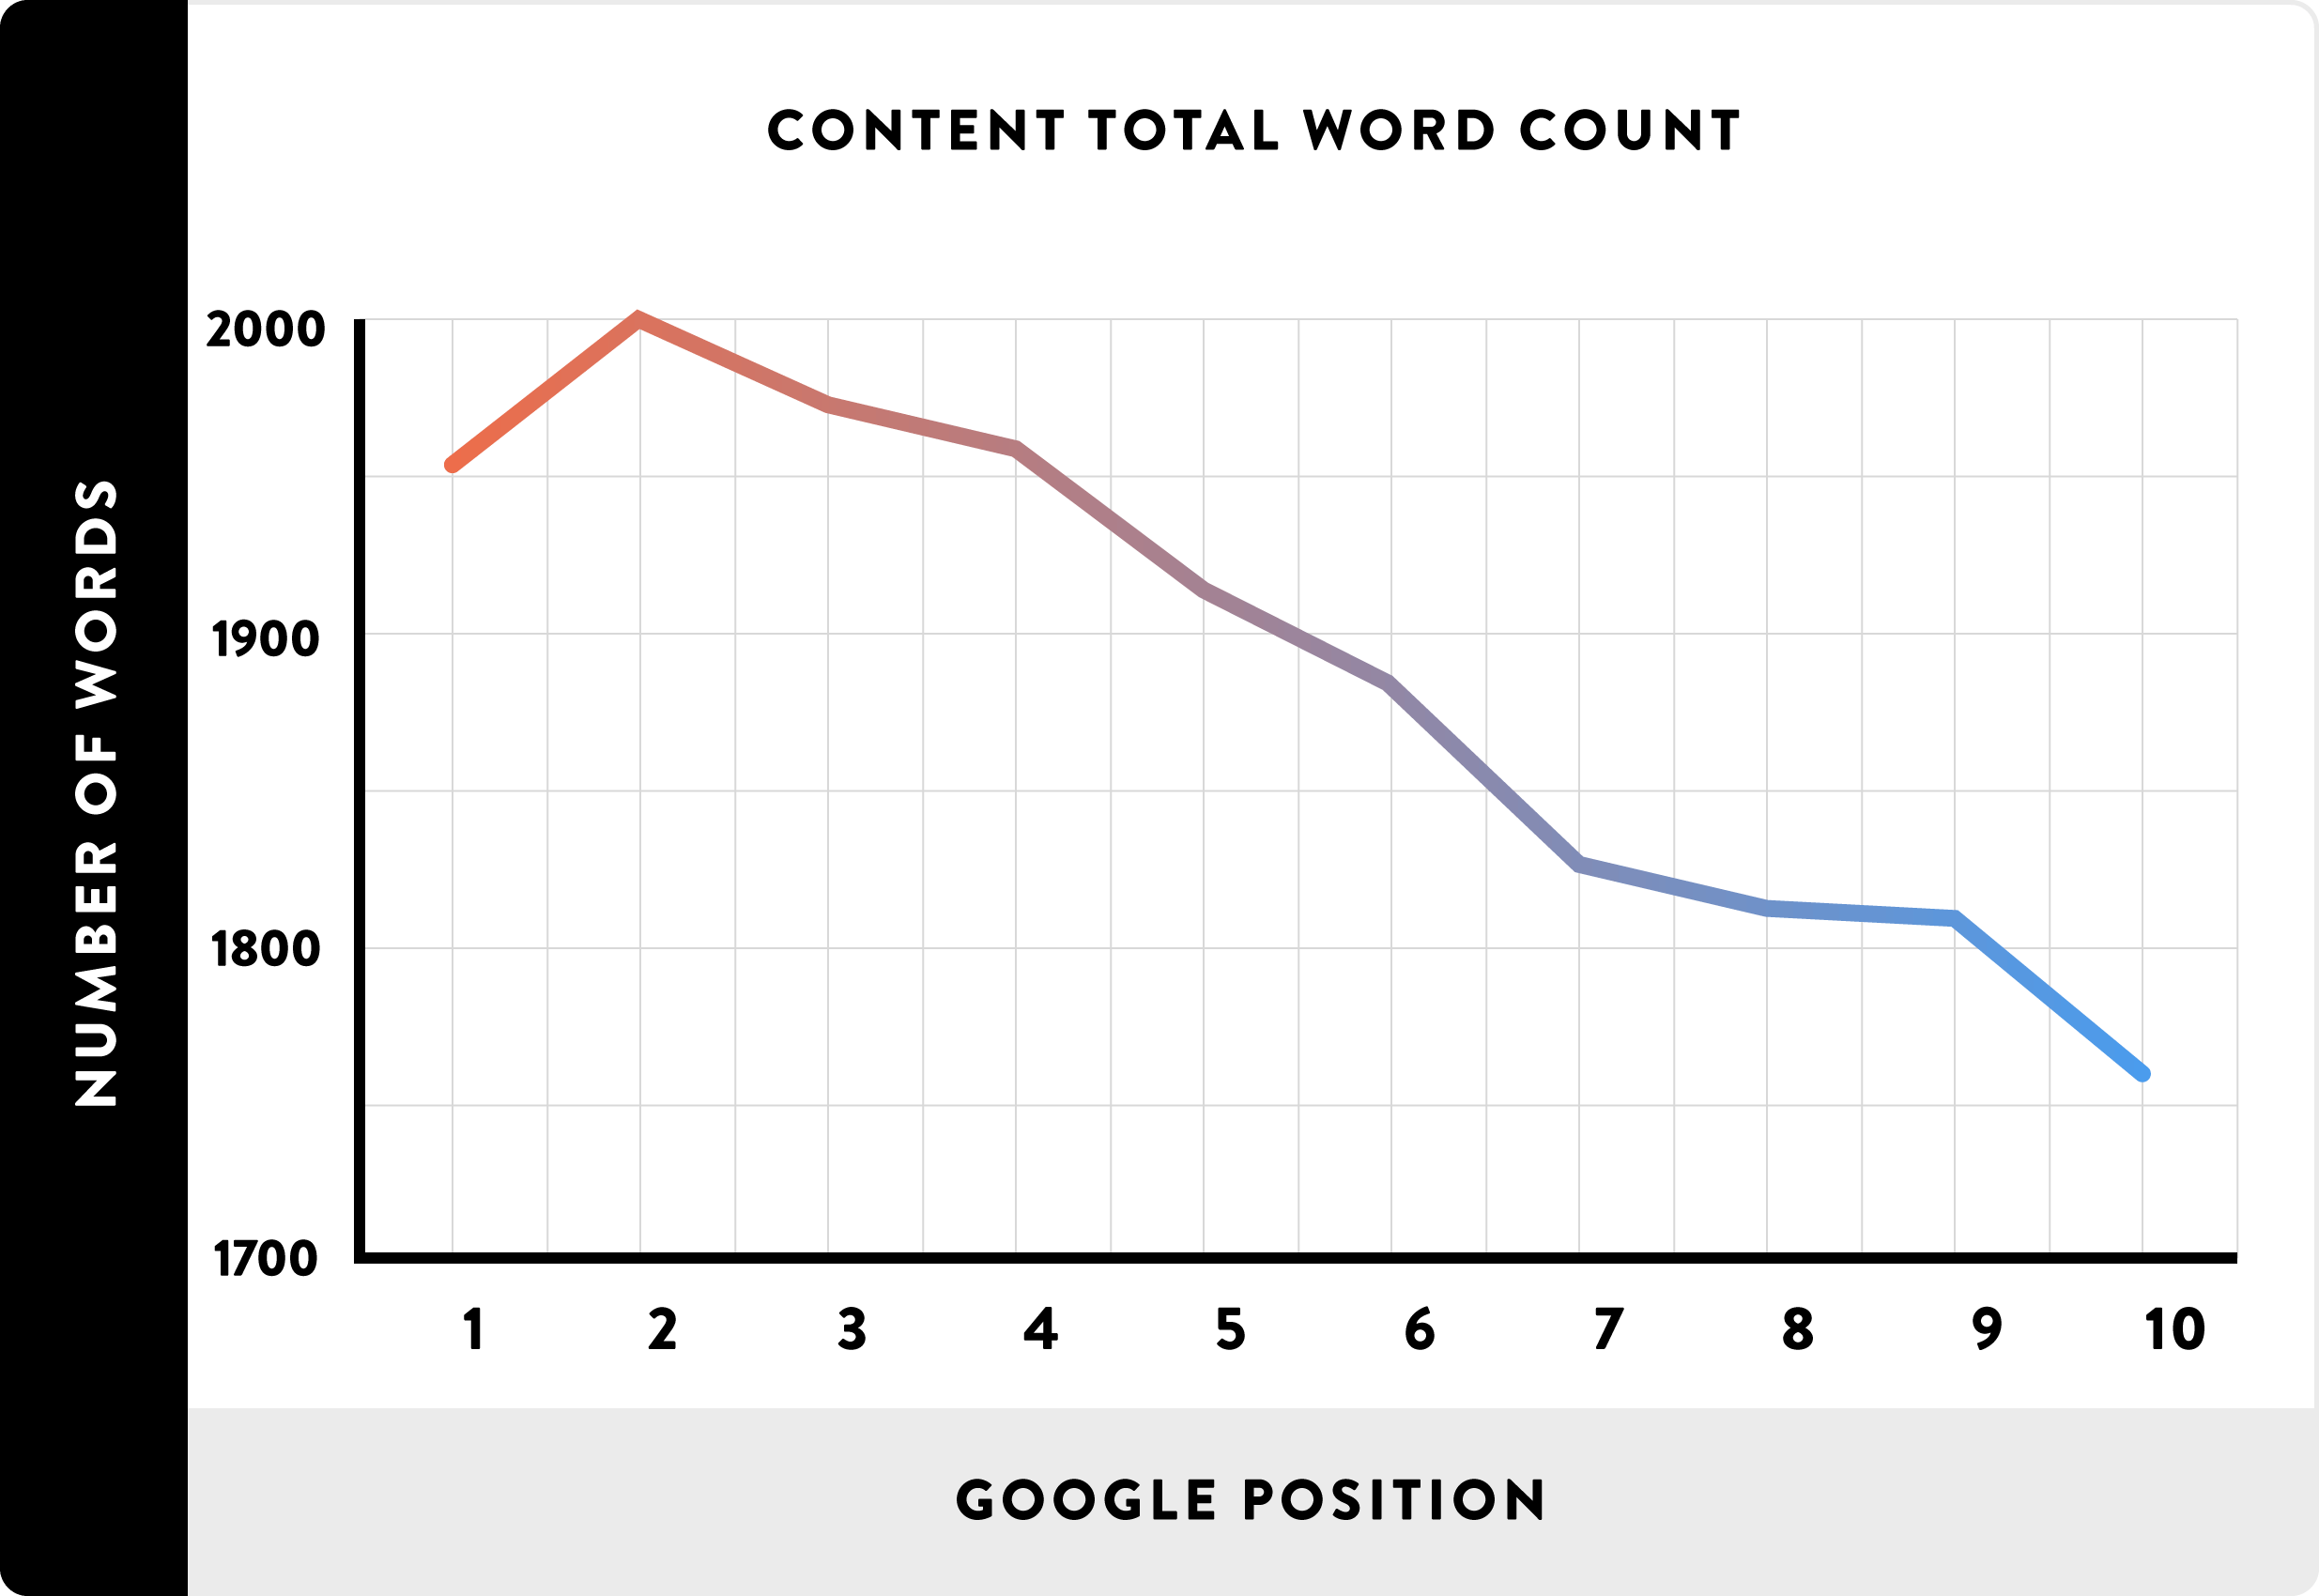 Content-Total-Word-Count_Ranking